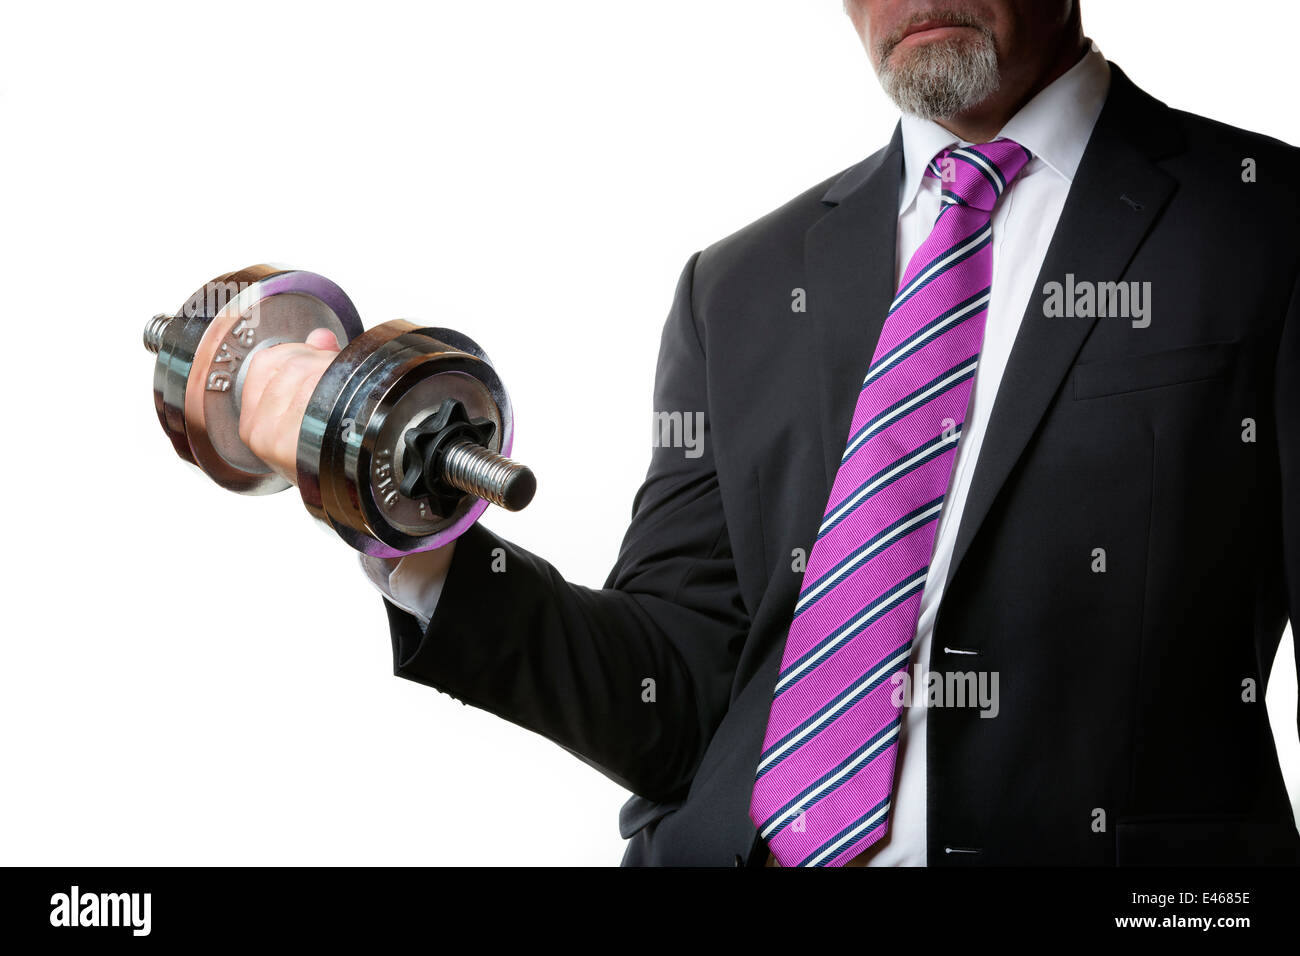 Businessman in black suit holding a silver dumbbell in the right hand - Stock Image